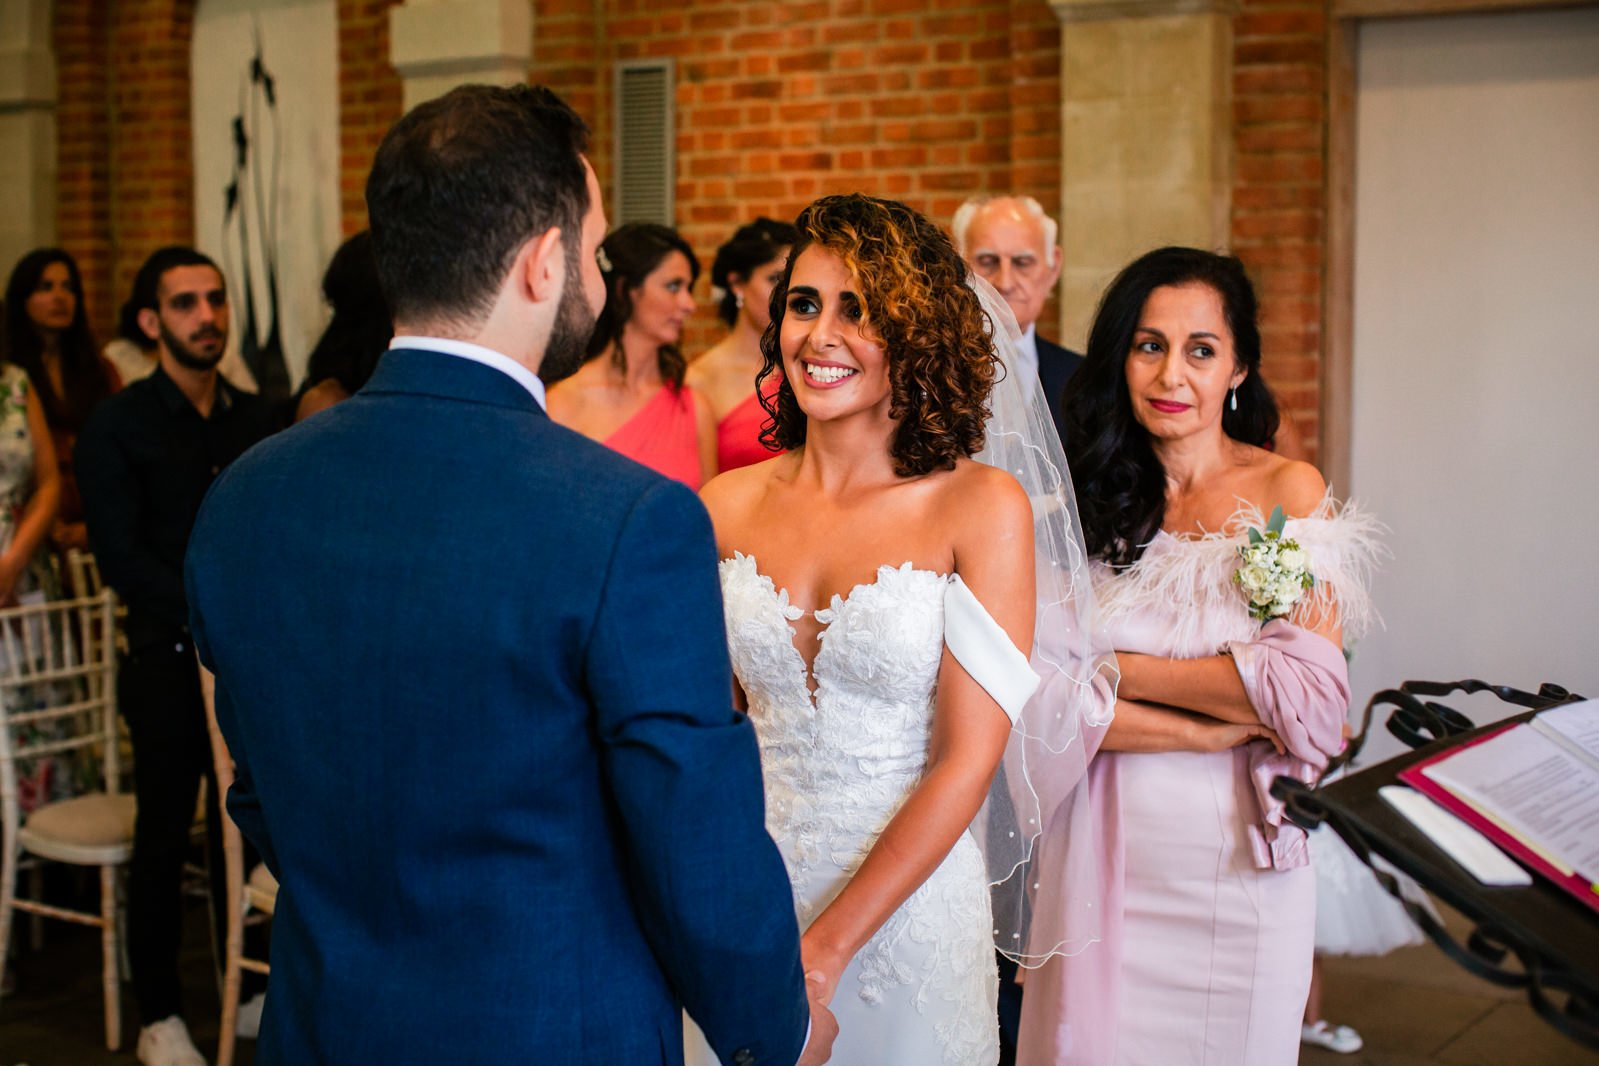 Beautiful Great Fosters Wedding - Melania & Benjamin 20